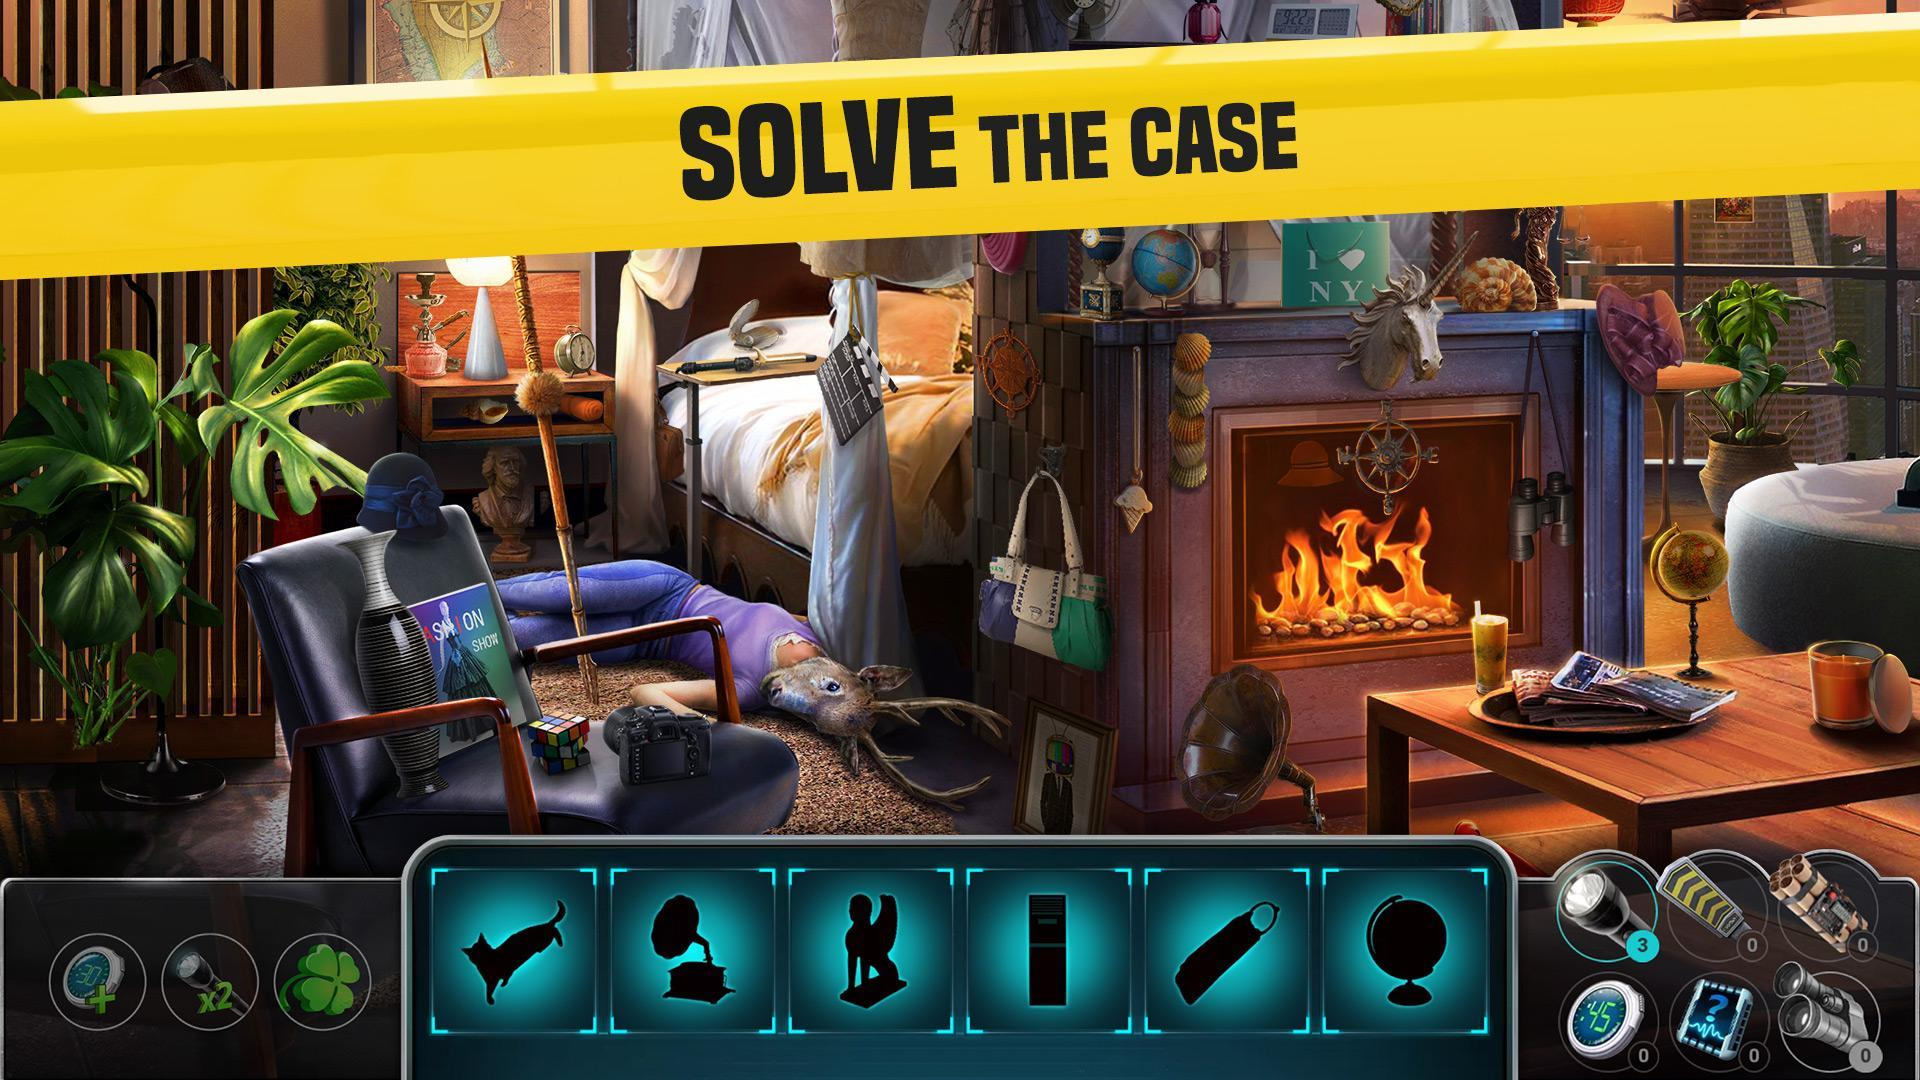 Homicide Squad New York Cases 2.30.3700 Screenshot 11